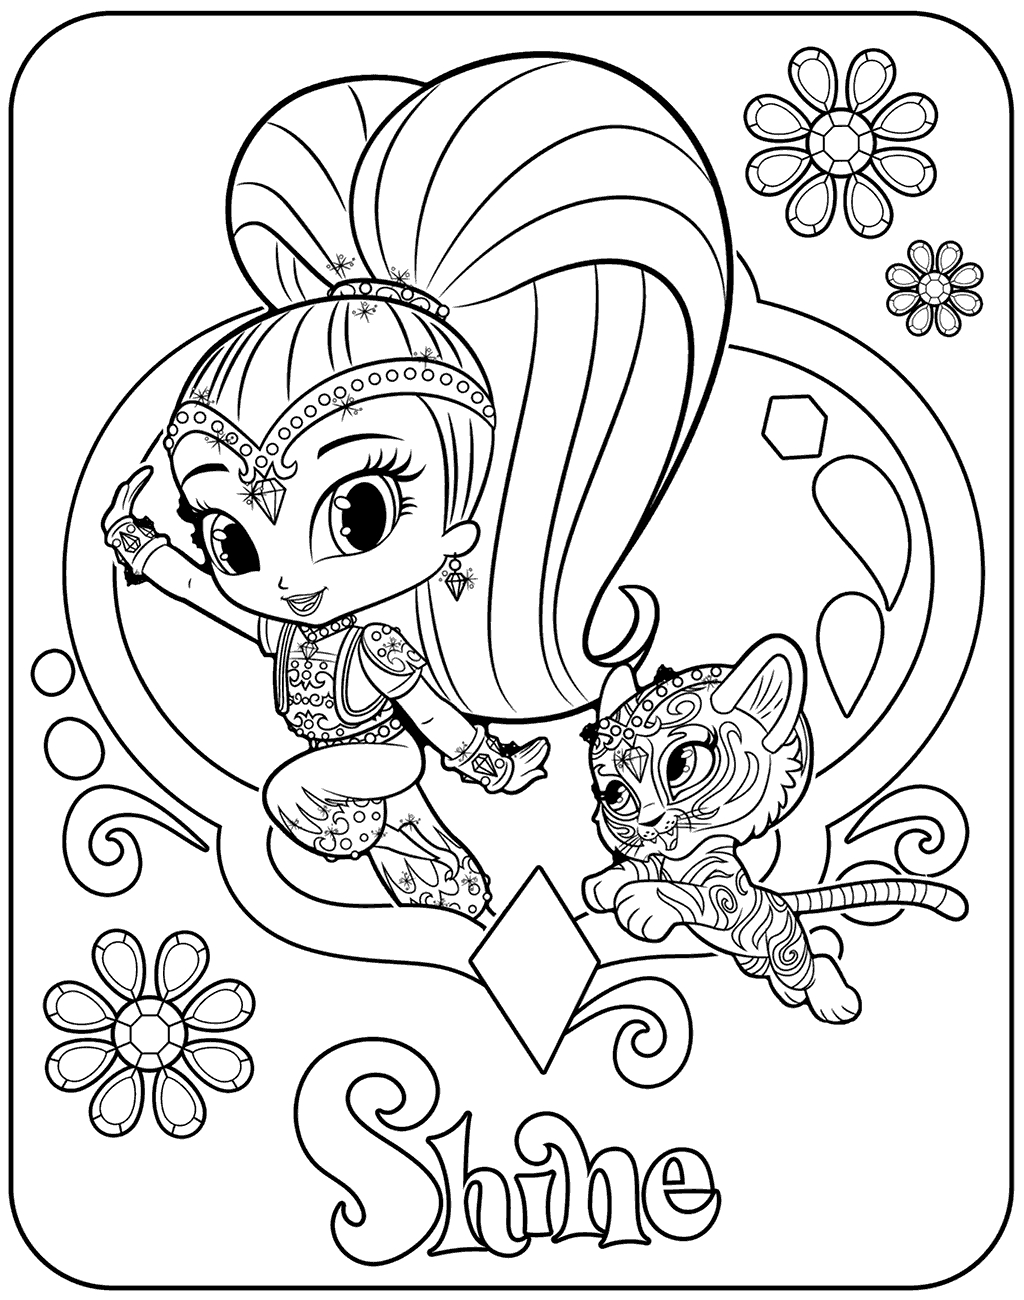 coloring shimmer and shine shimmer and shine coloring page free printable coloring coloring shine and shimmer